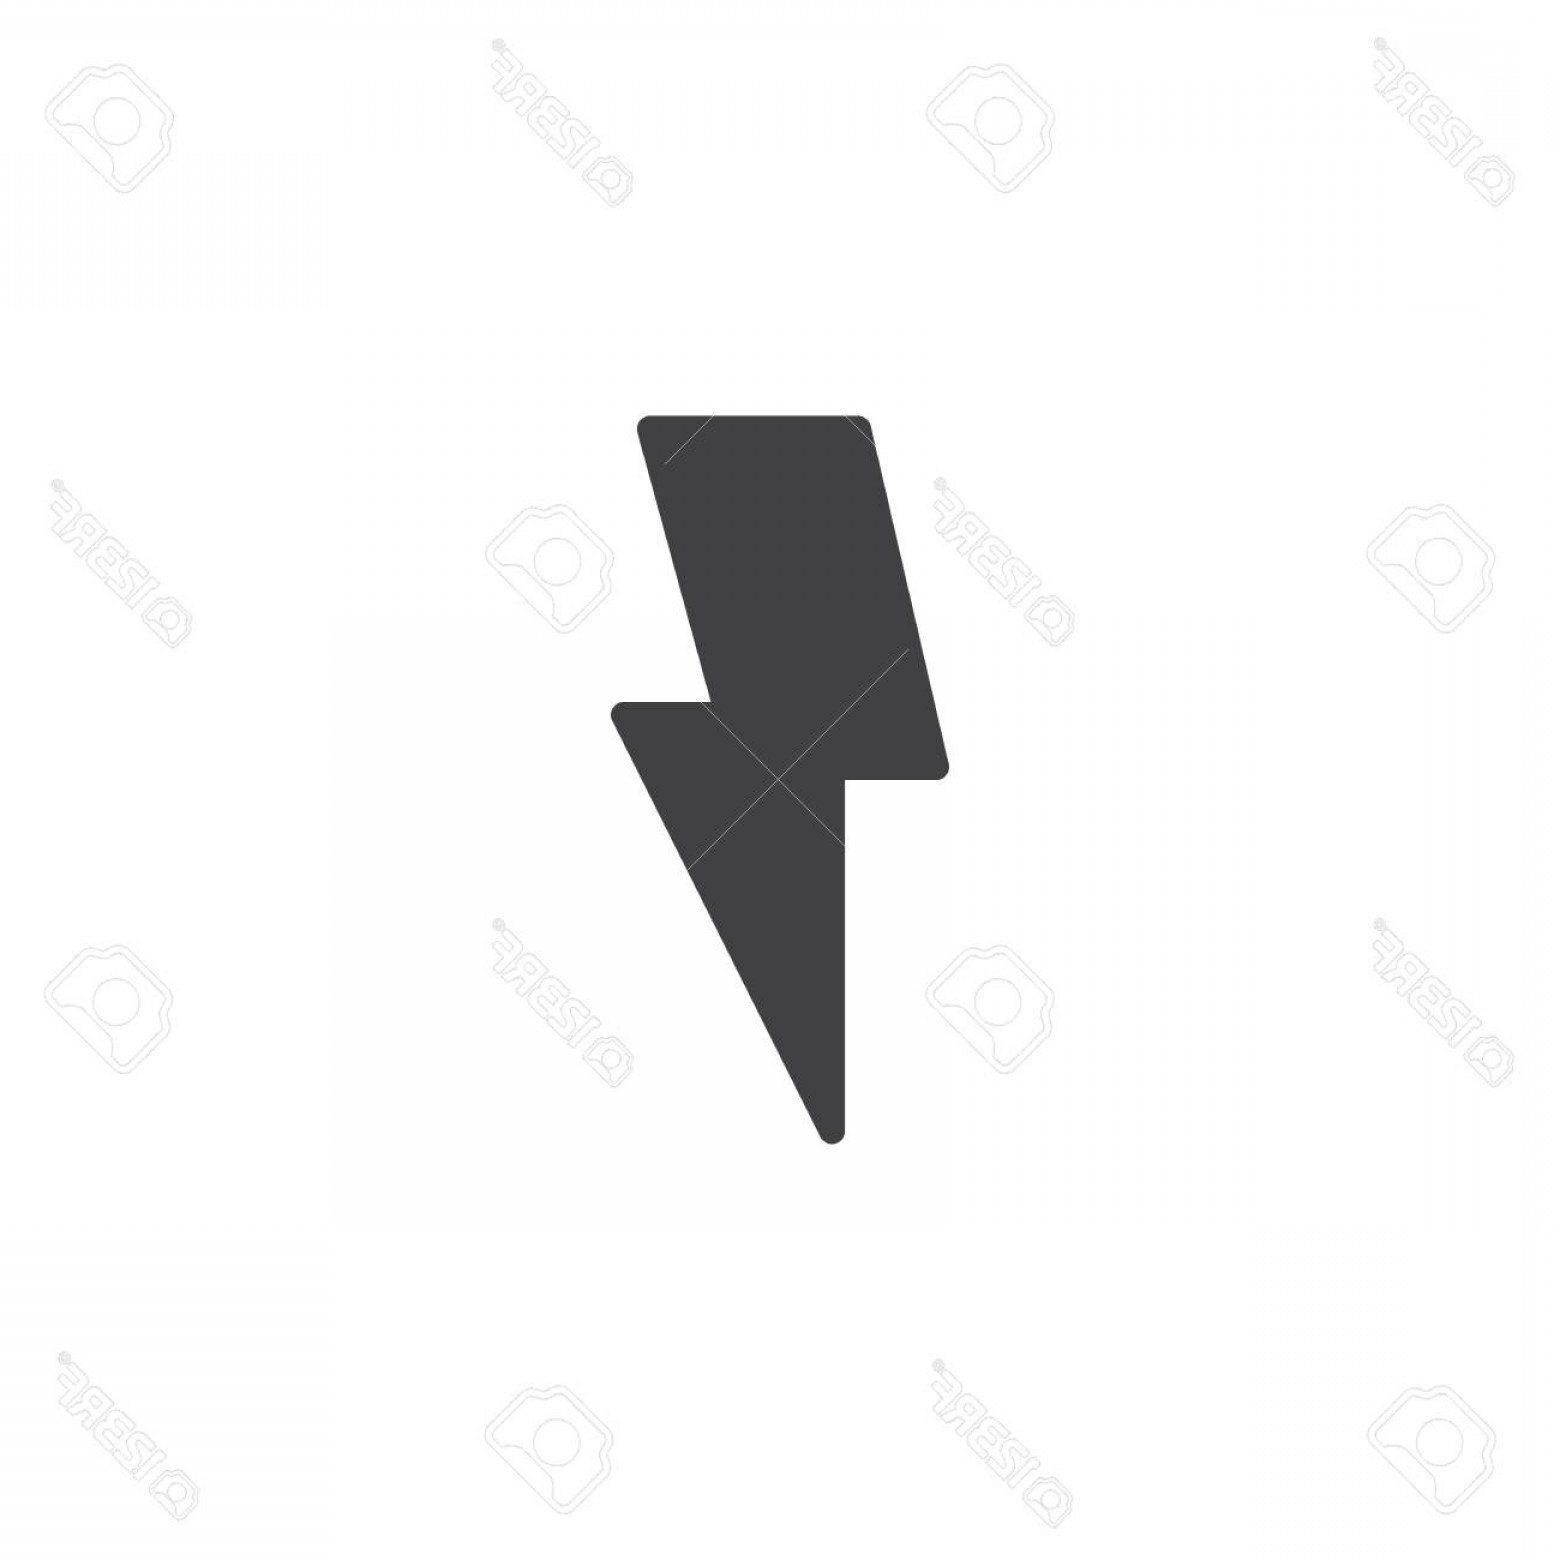 Realistic Lightning Bolt Vector